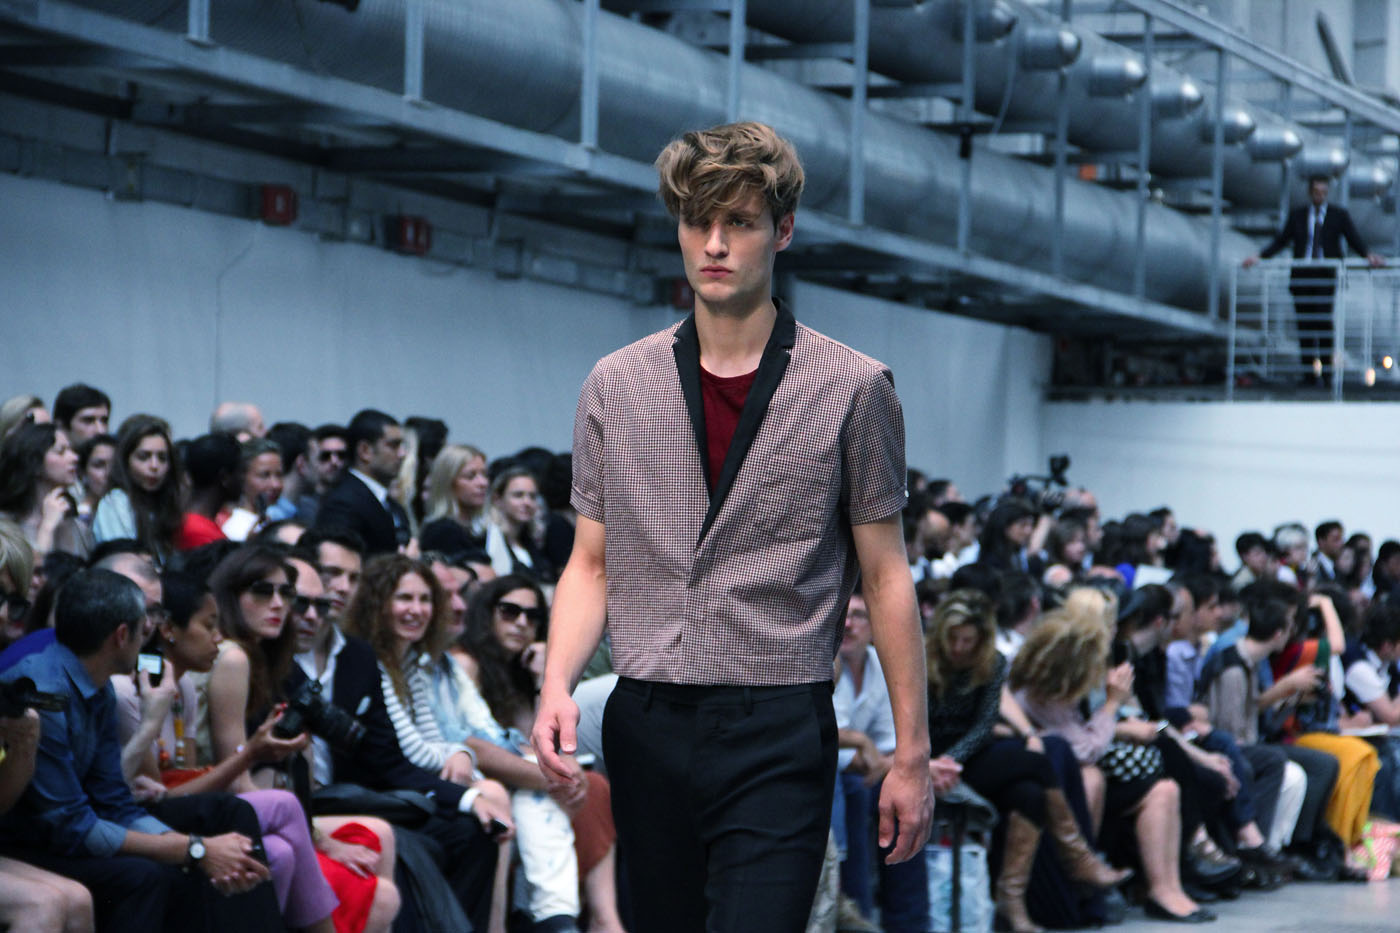 costume-national-homme-spring-summer-2012-men-collection-milano-fashion-week-2012-costume-national-homme-primavera-estate-catwalk-2012